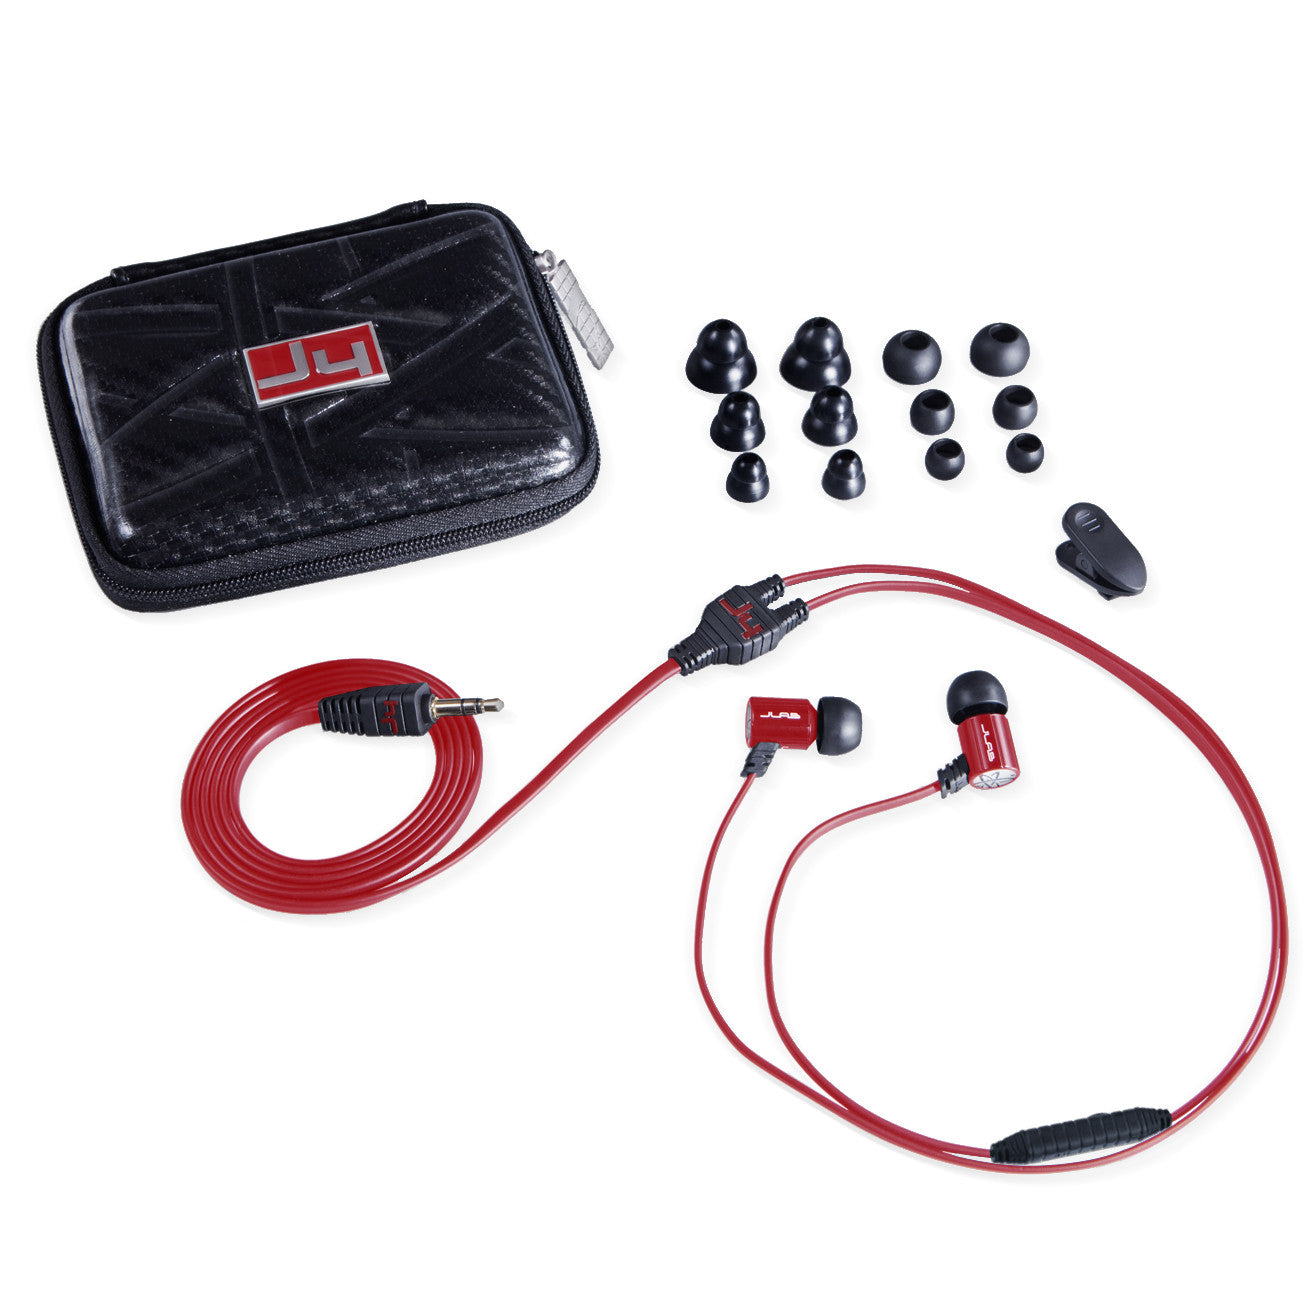 Earbuds with microphone iphone 8 - earbuds with microphone red